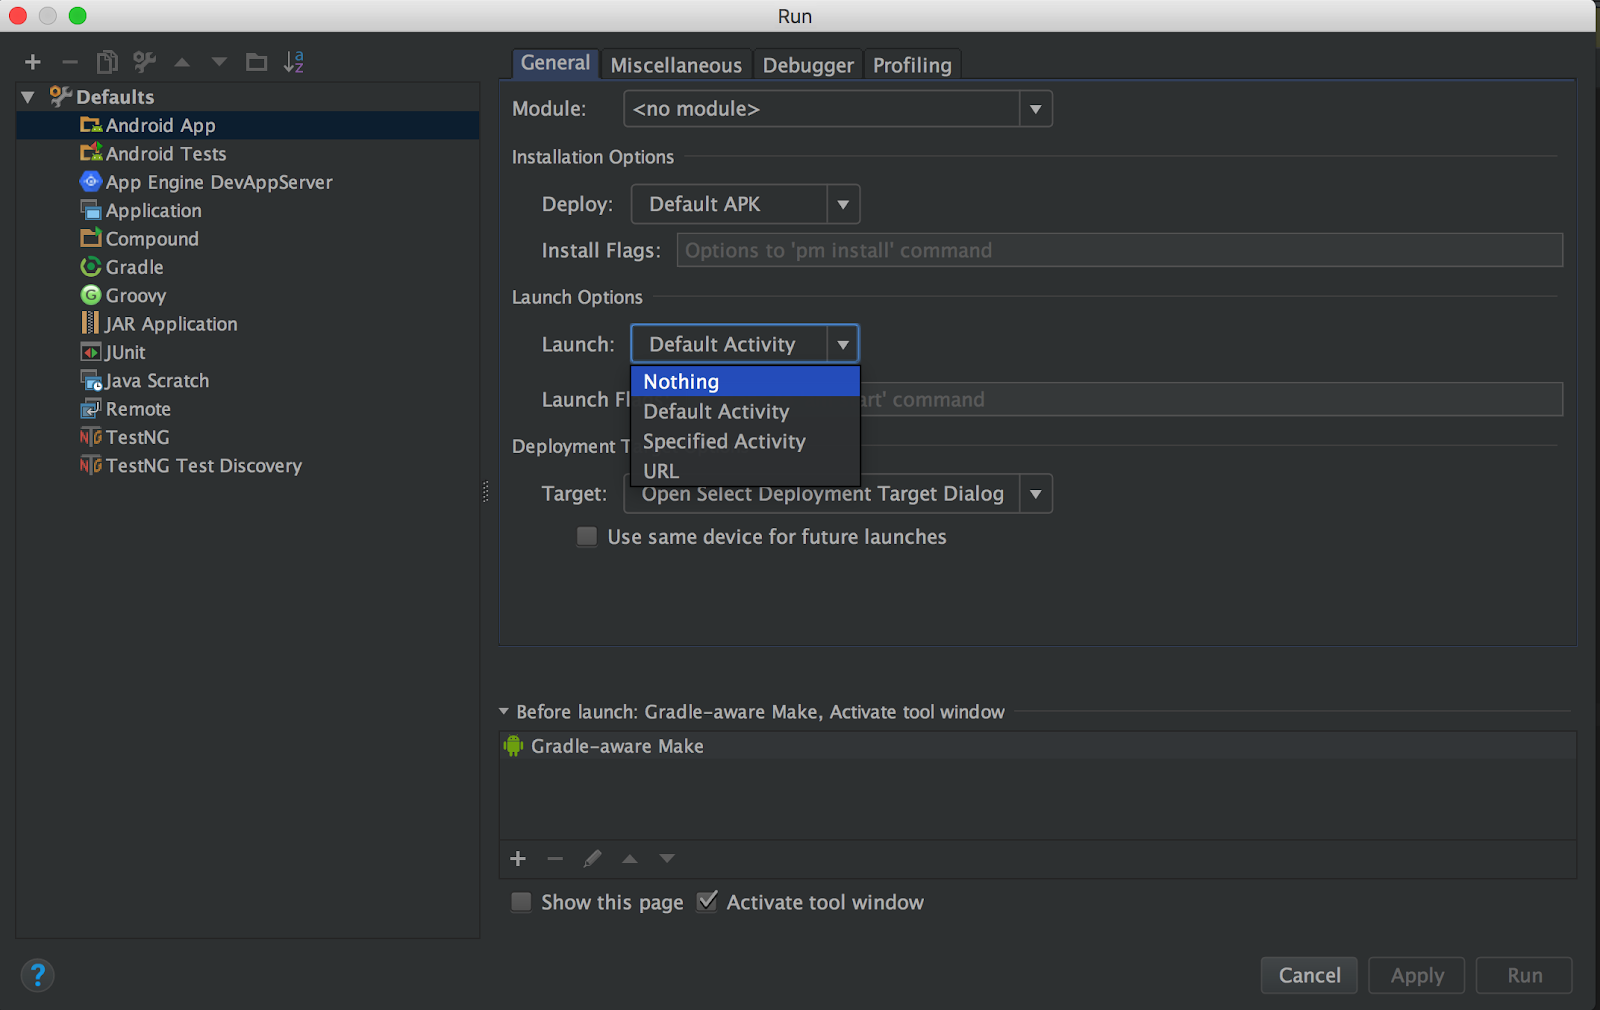 Drop down to configure run settings to launch a service using Android Studio.